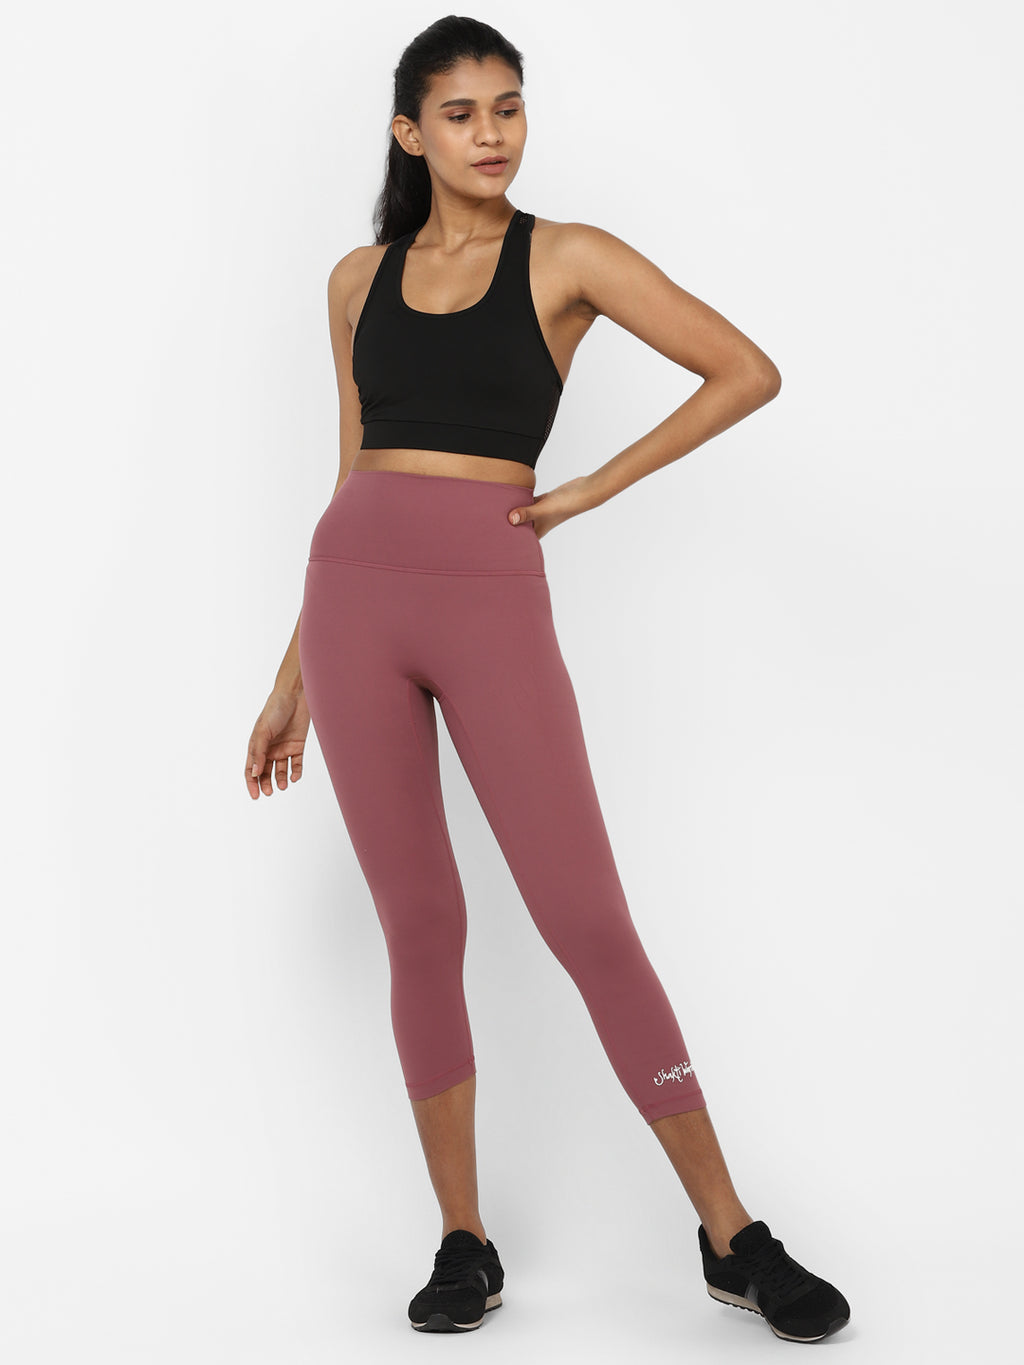 Shakti Warrior Activewear yoga leggings